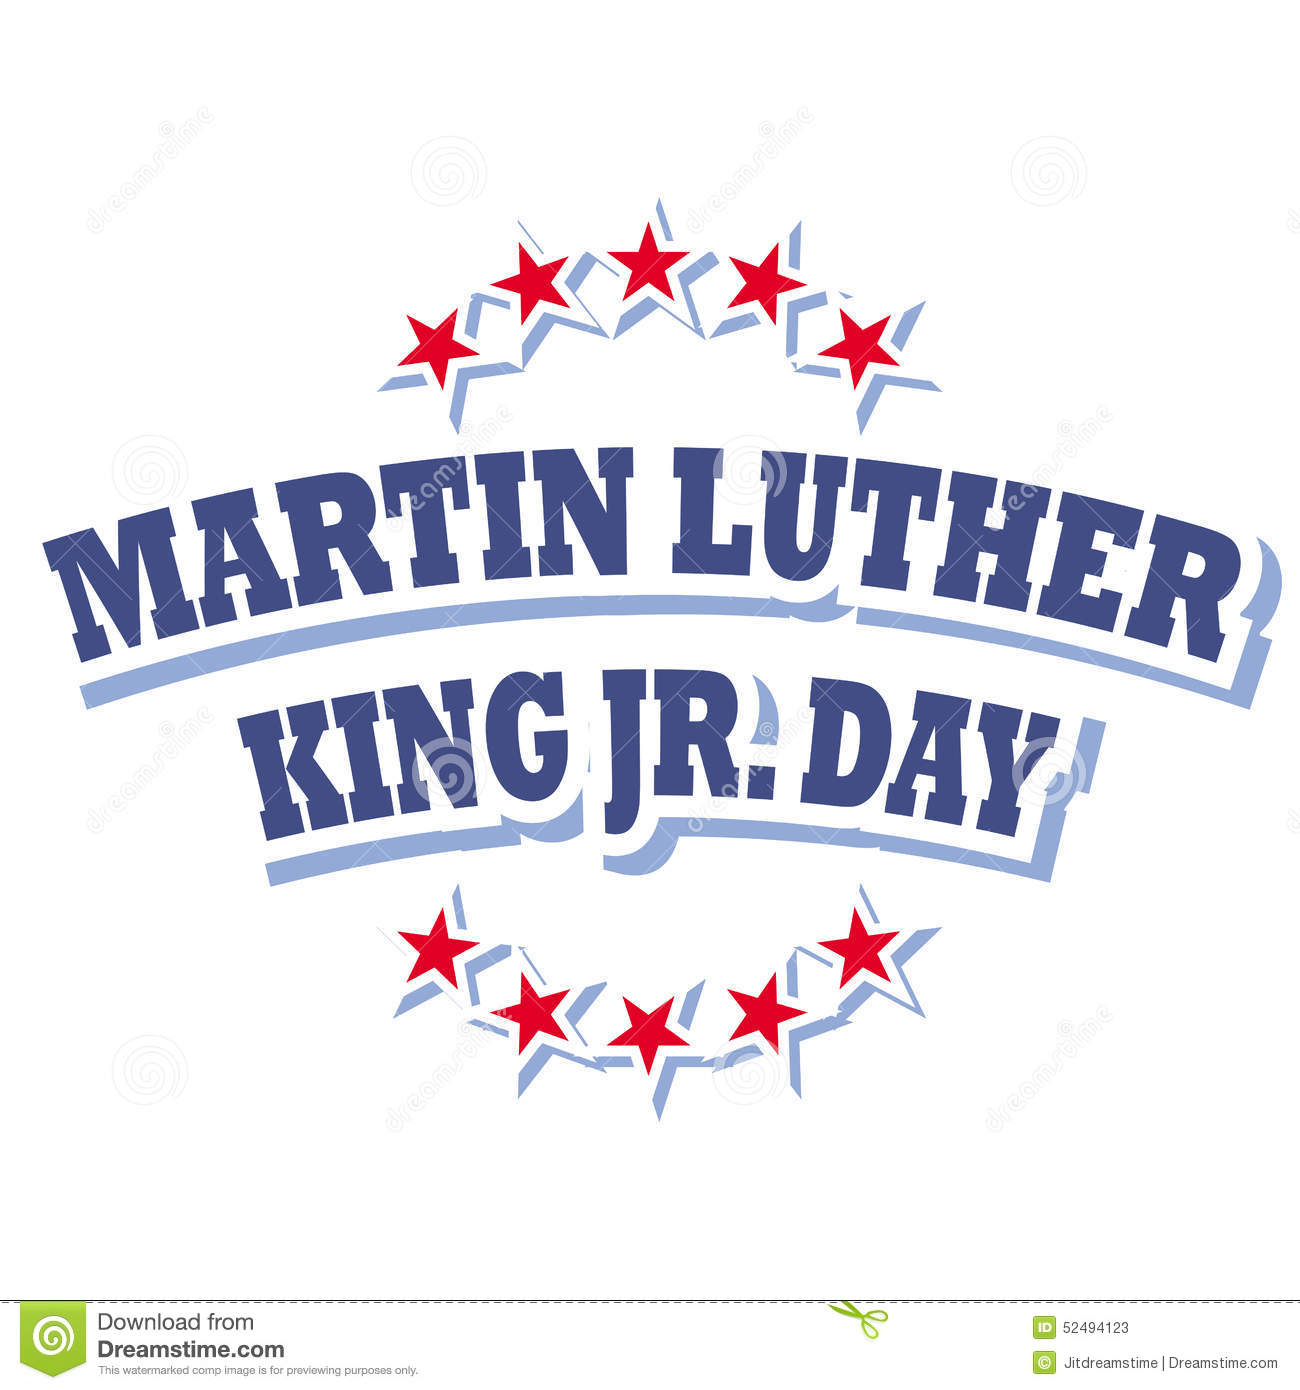 Free clipart of martin luther king jr svg black and white library Martin Luther King Jr Day Clipart | Clipart Panda - Free Clipart Images svg black and white library